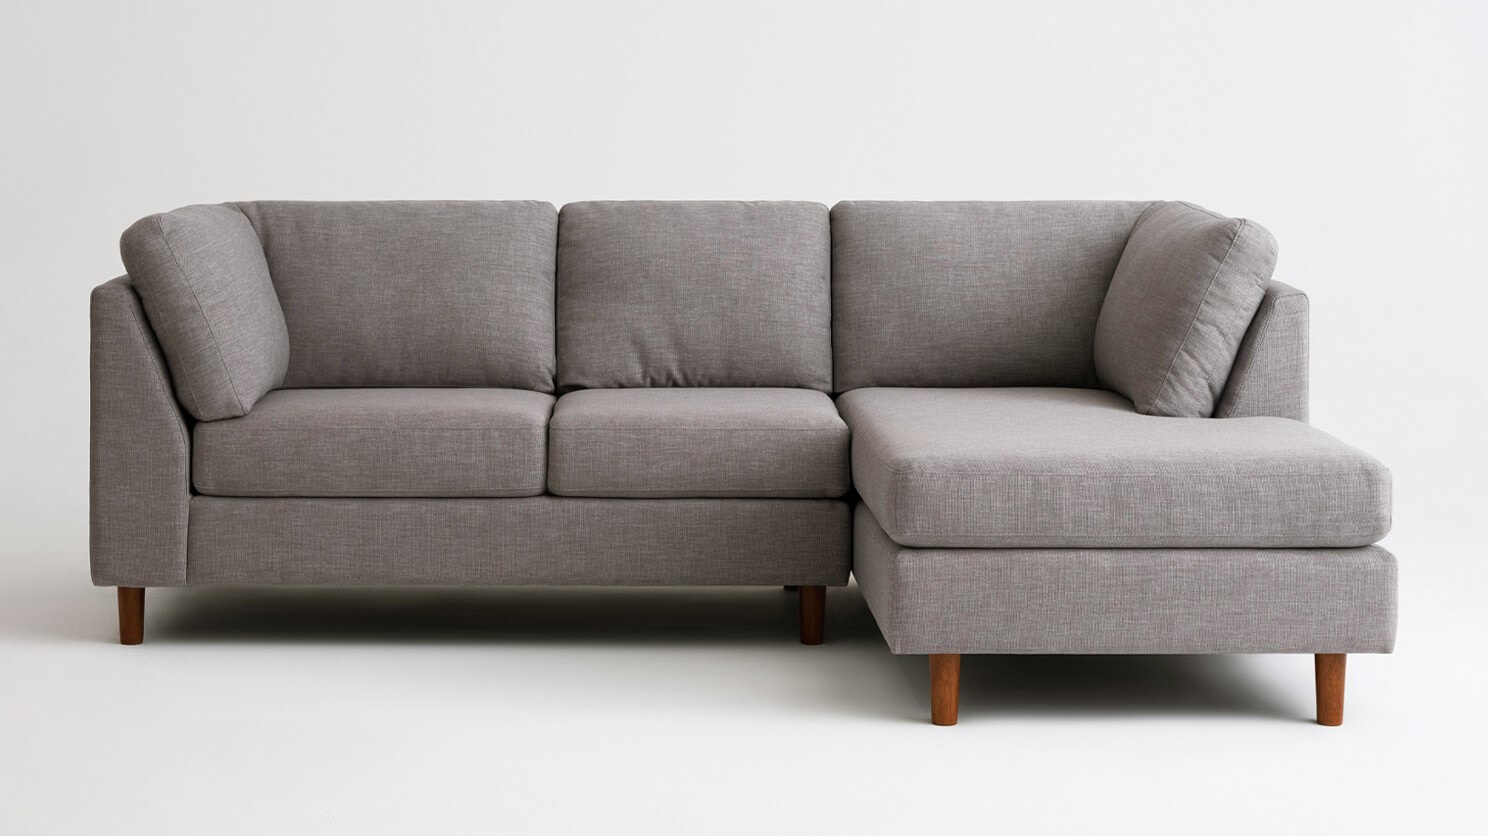 Awesome Salema 2 Piece Sectional Sofa With Chaise Gmtry Best Dining Table And Chair Ideas Images Gmtryco